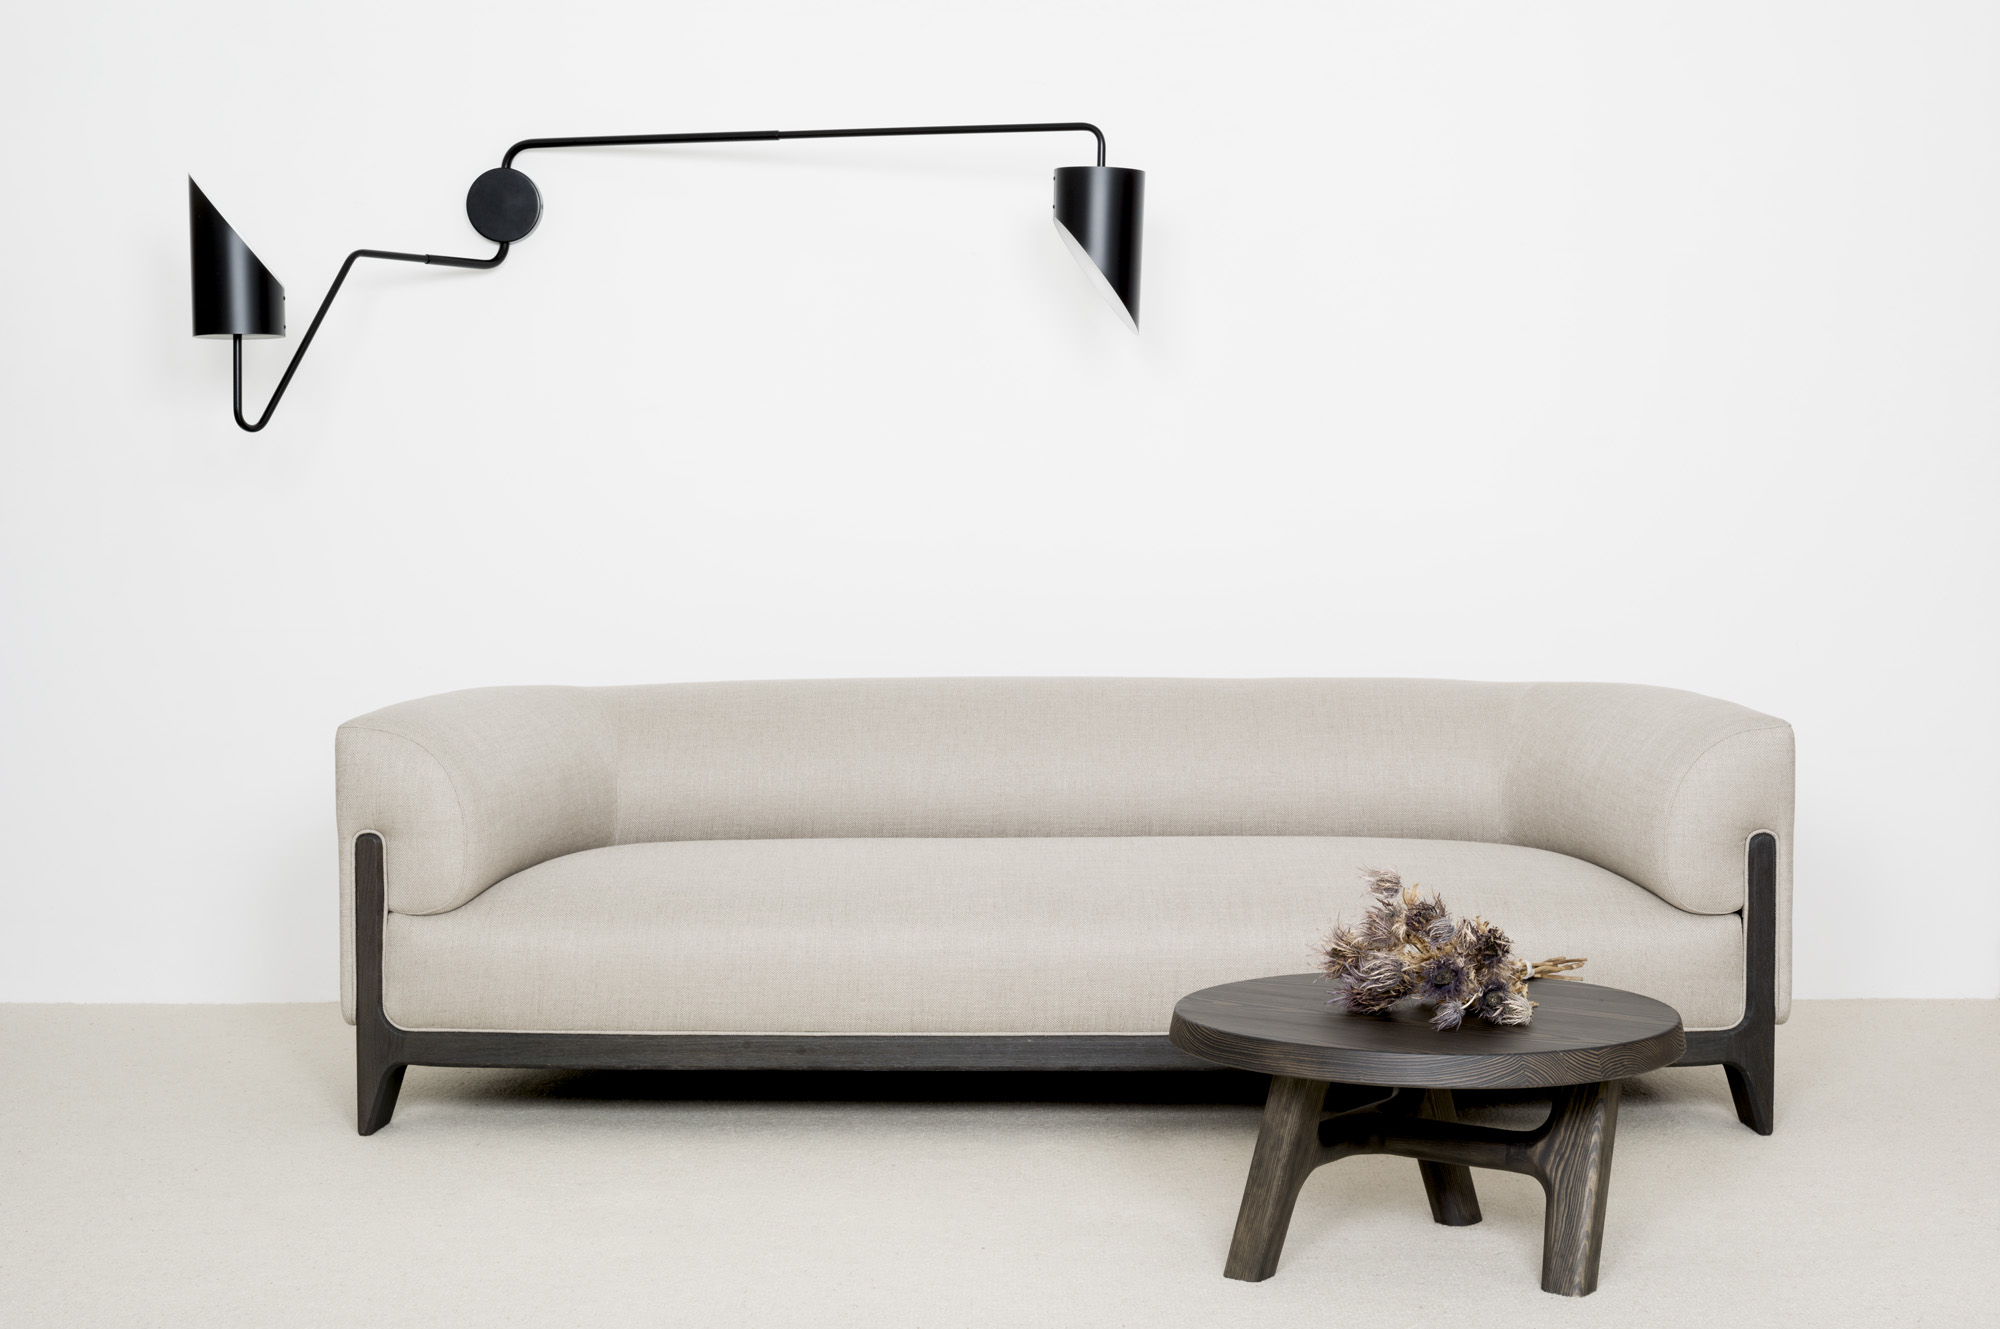 Swn Wall Lamp Bob Sofa Bui Side Table